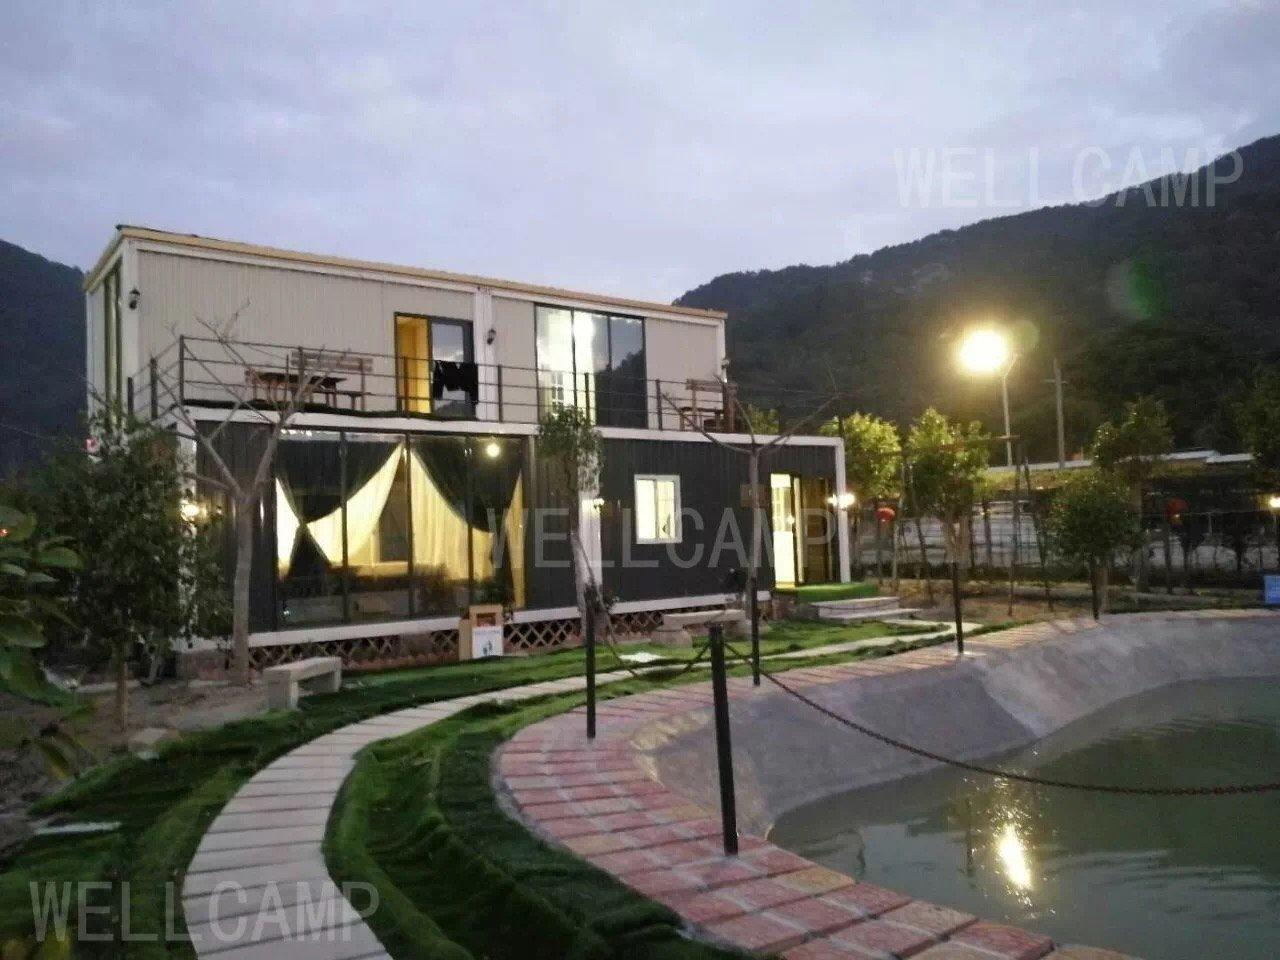 A container house&container villa resort&container hotel&container labor camp